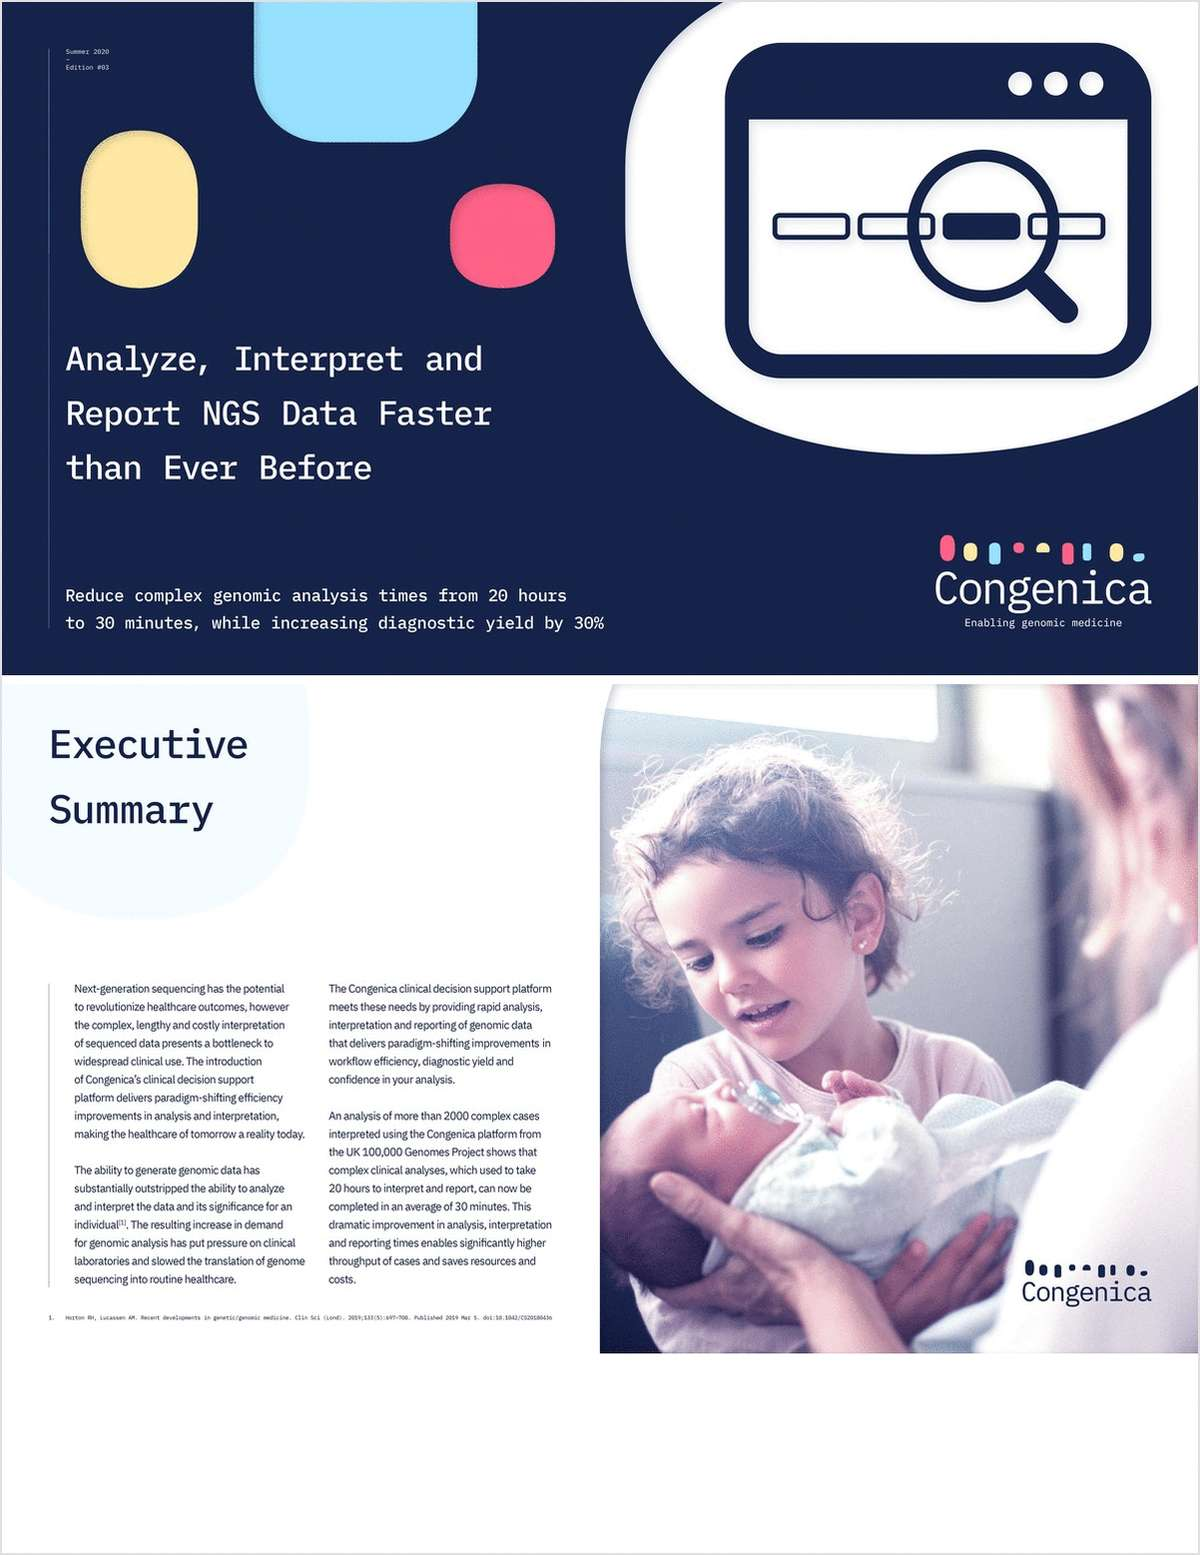 Analyze, Interpret and Report NGS Data Faster than Ever Before